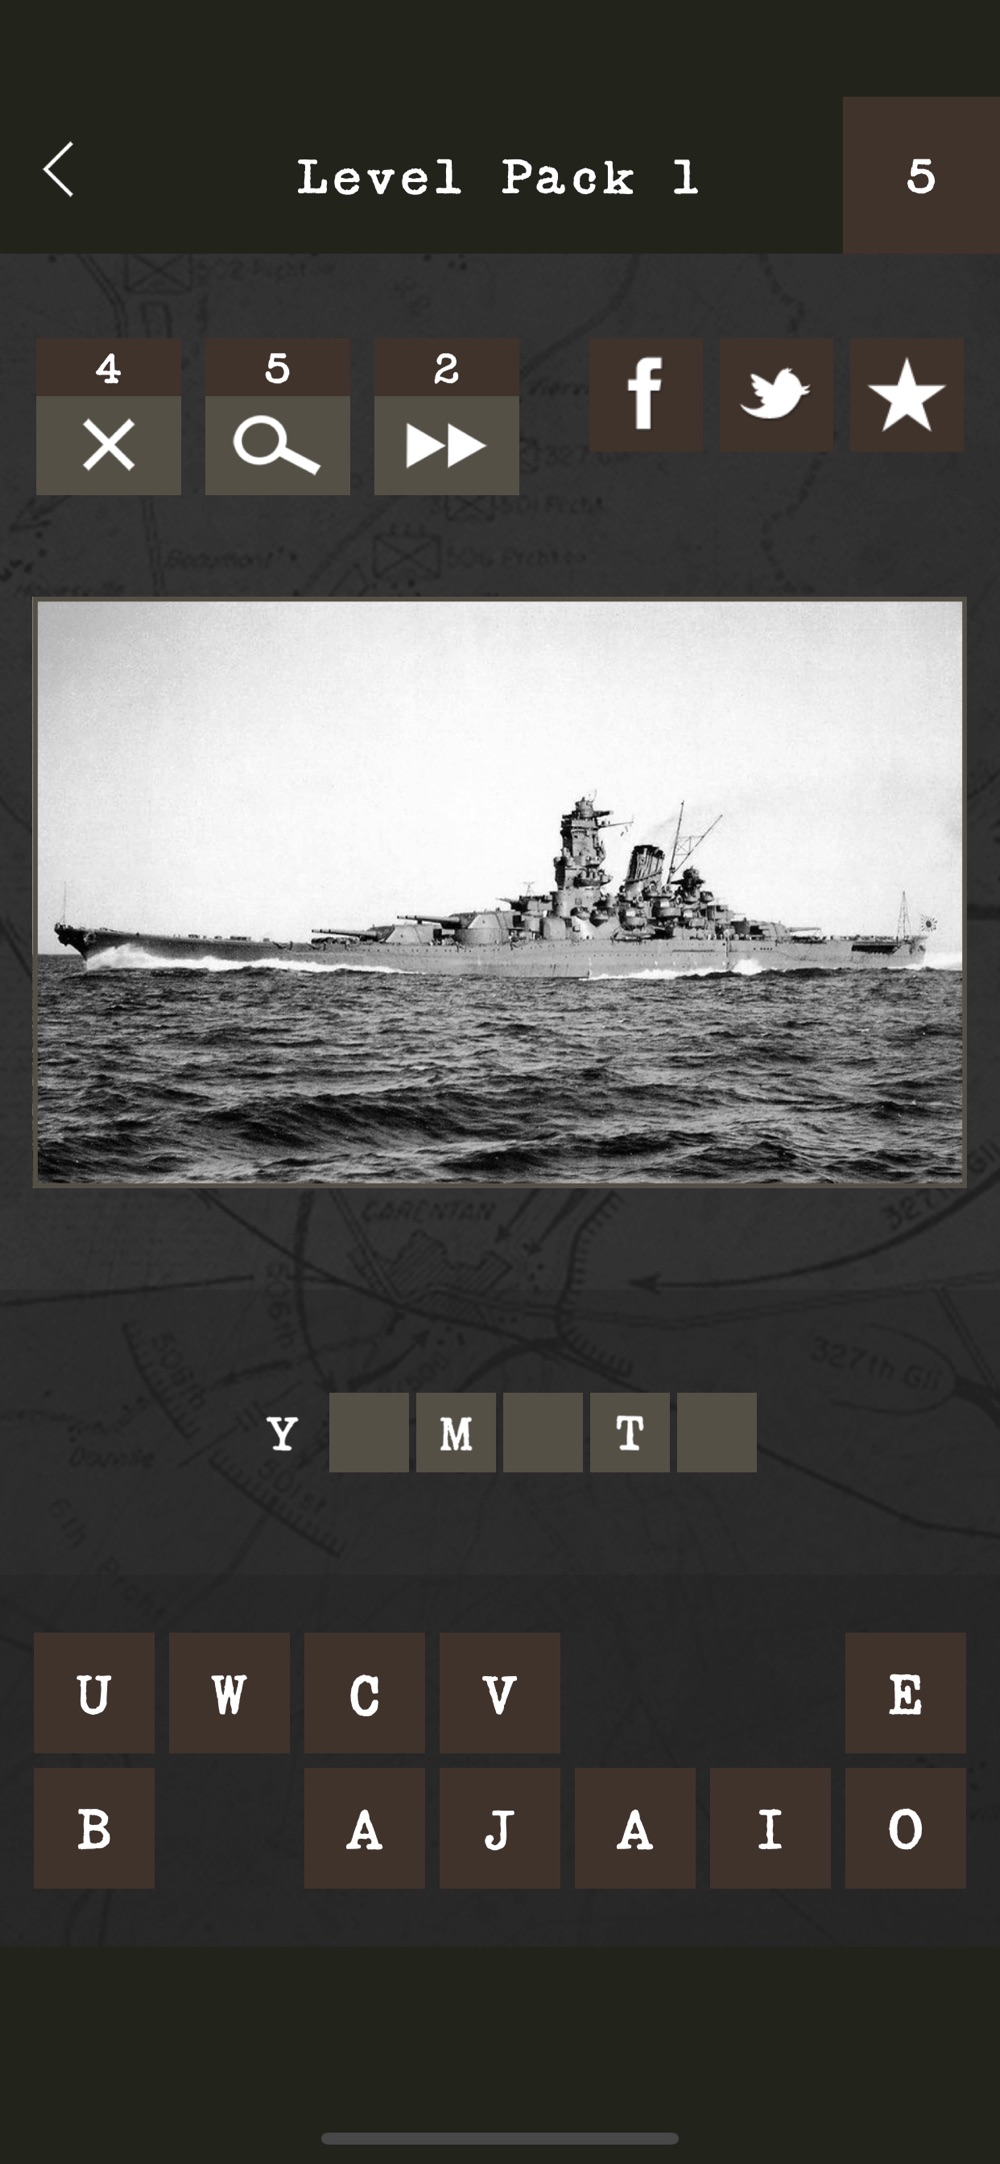 Guess the World War II Weapon Cheat Codes